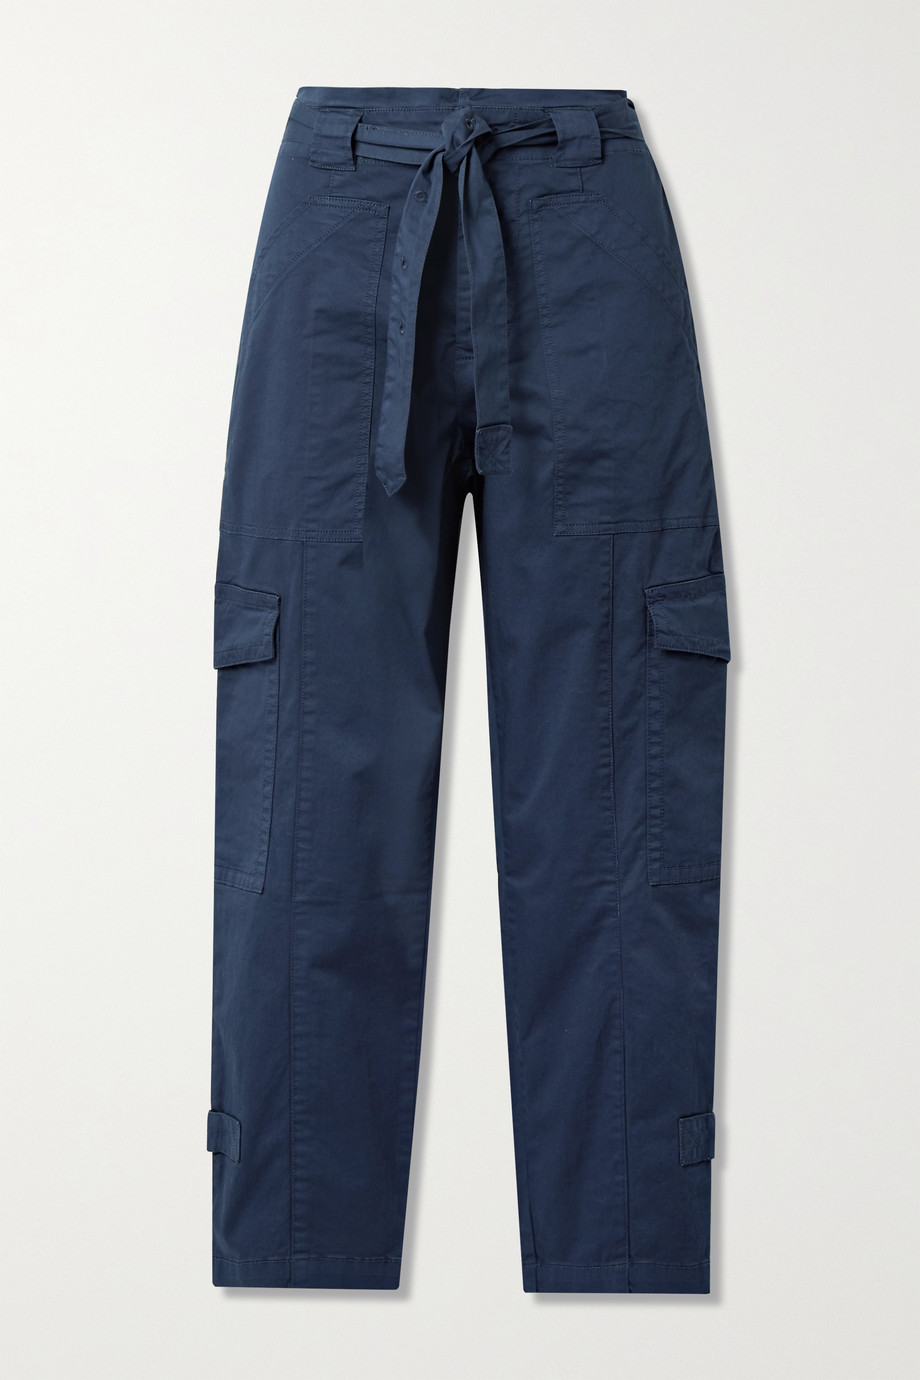 Alex Mill Expedition belted washed stretch-cotton slim-leg pants